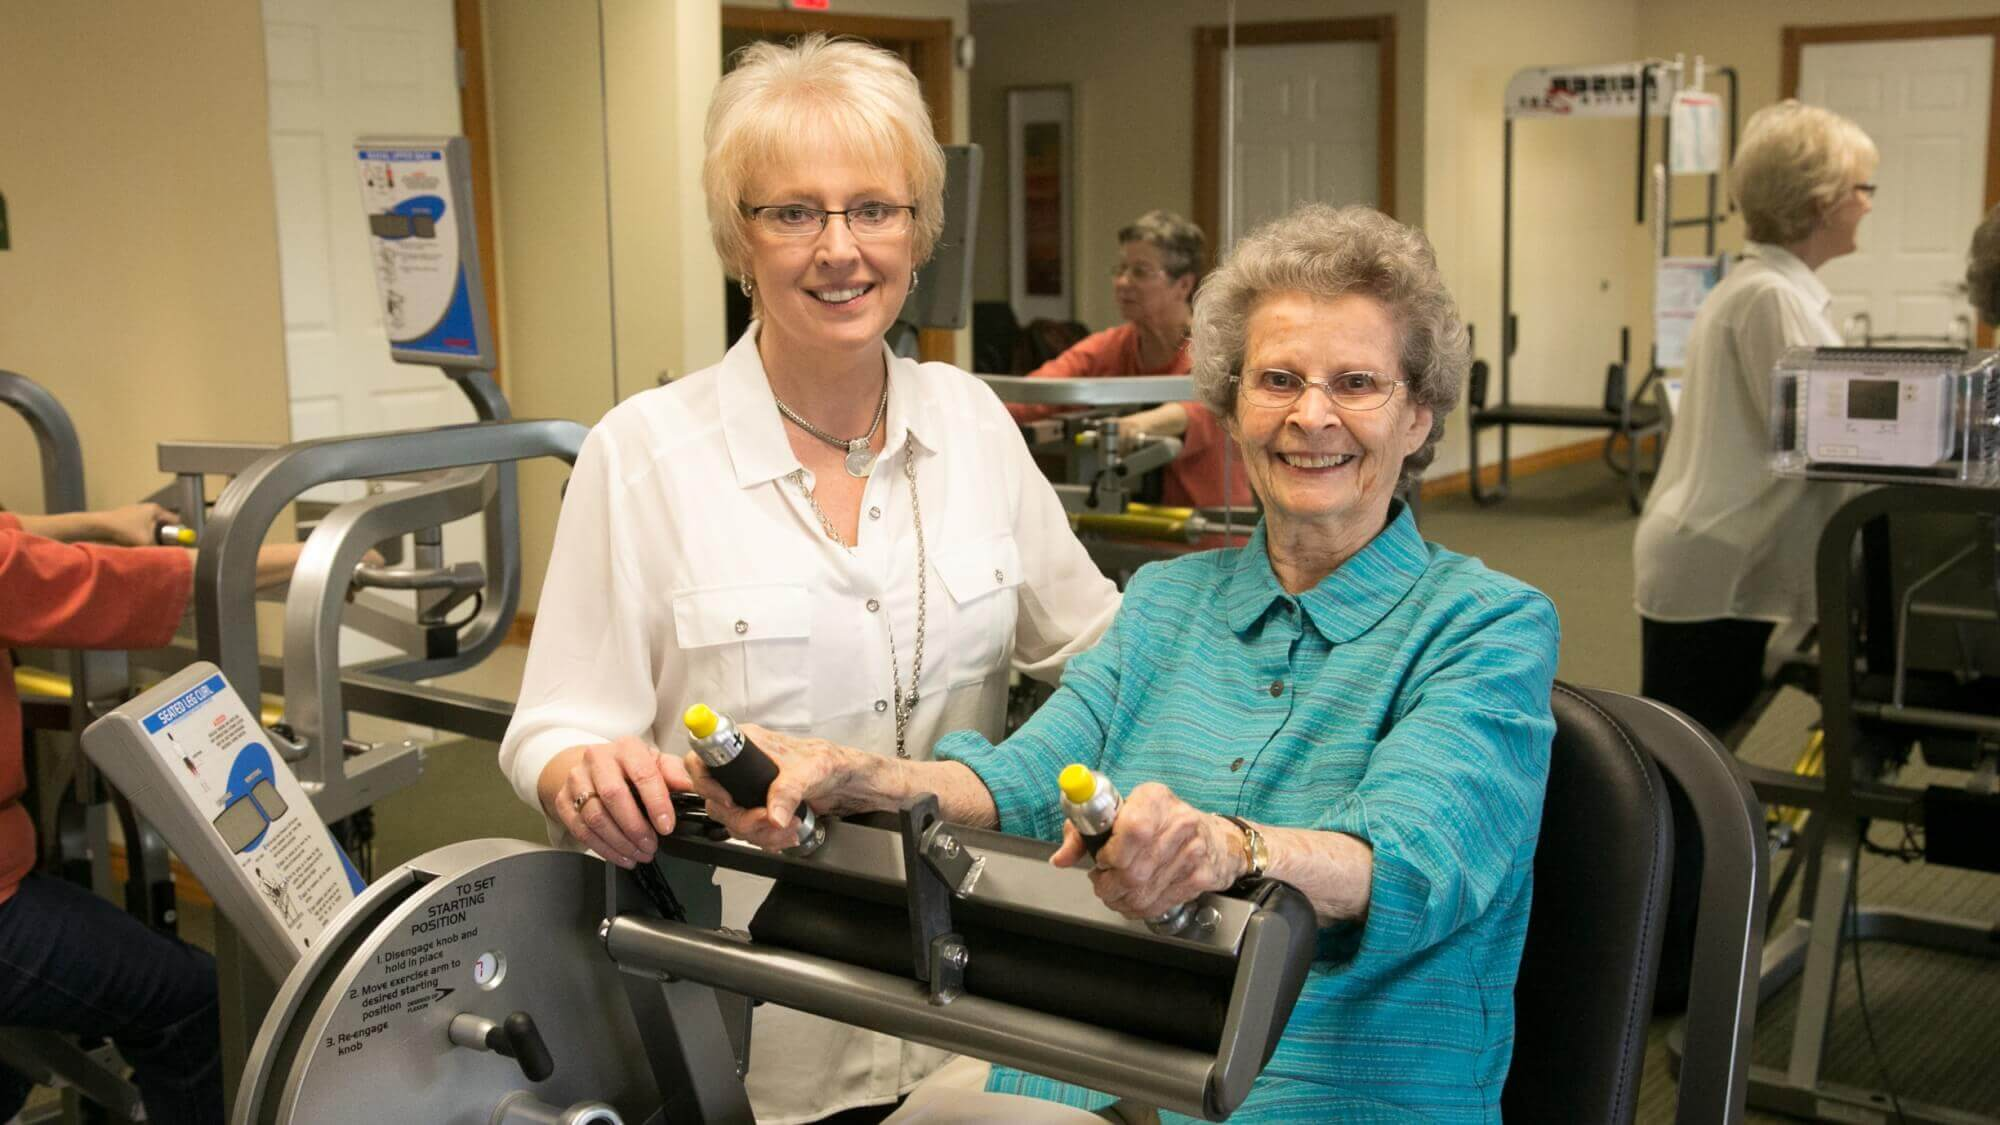 Happy senior learning how to use different machines in the fitness room at Resort Lifestyle Community.